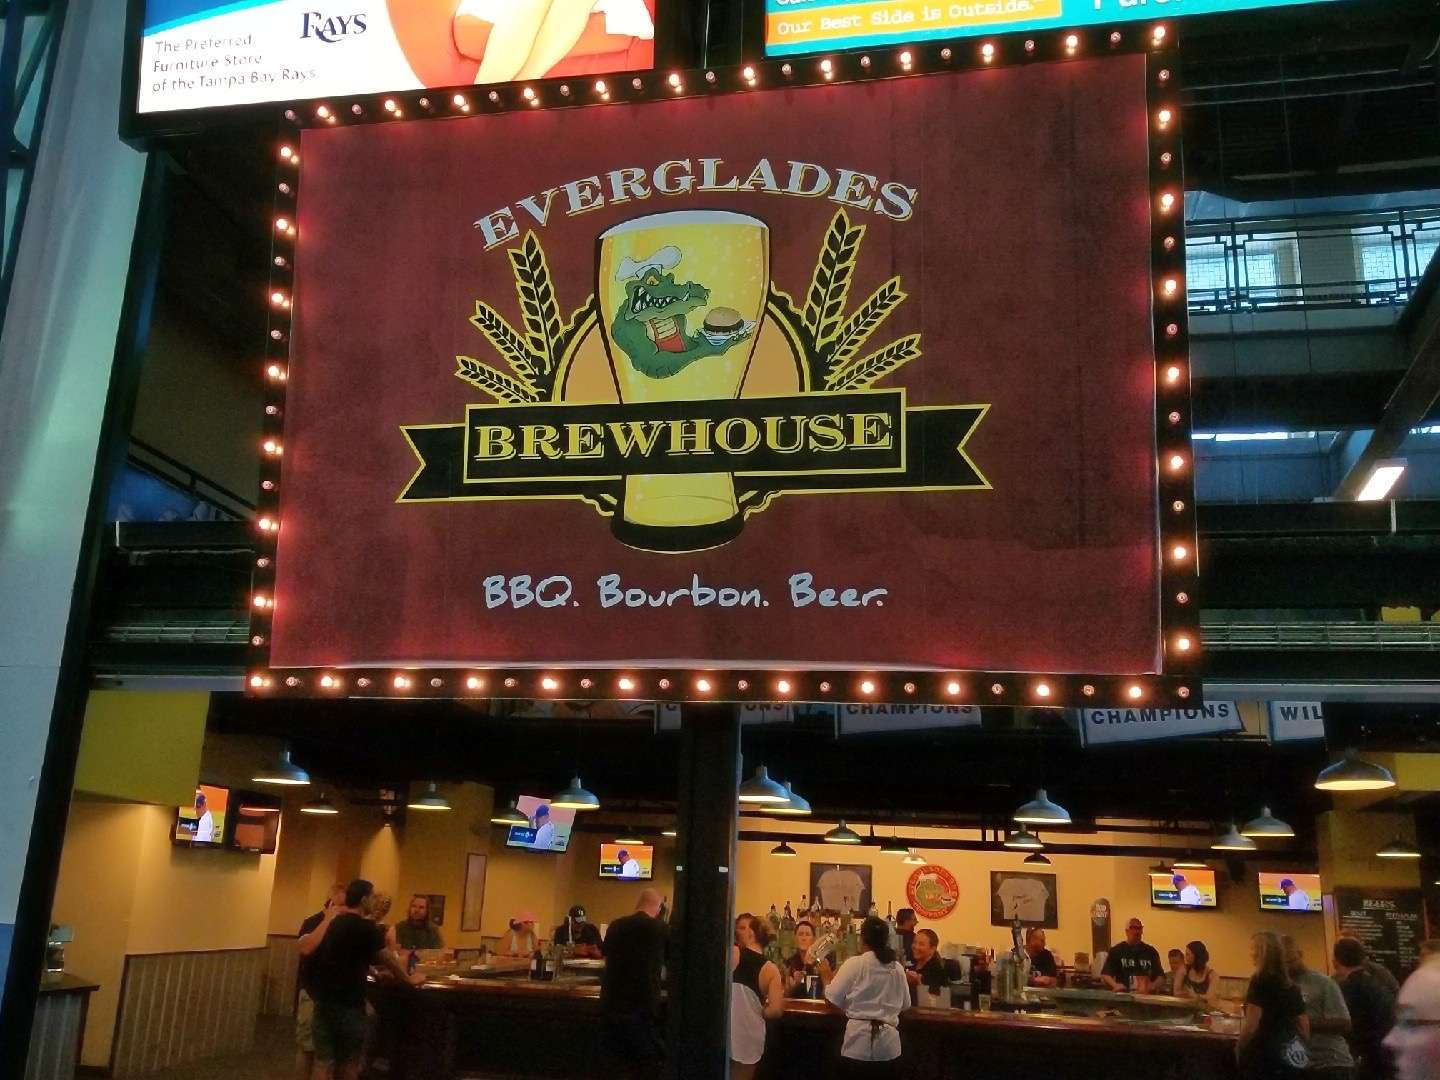 Everglades Brewhouse